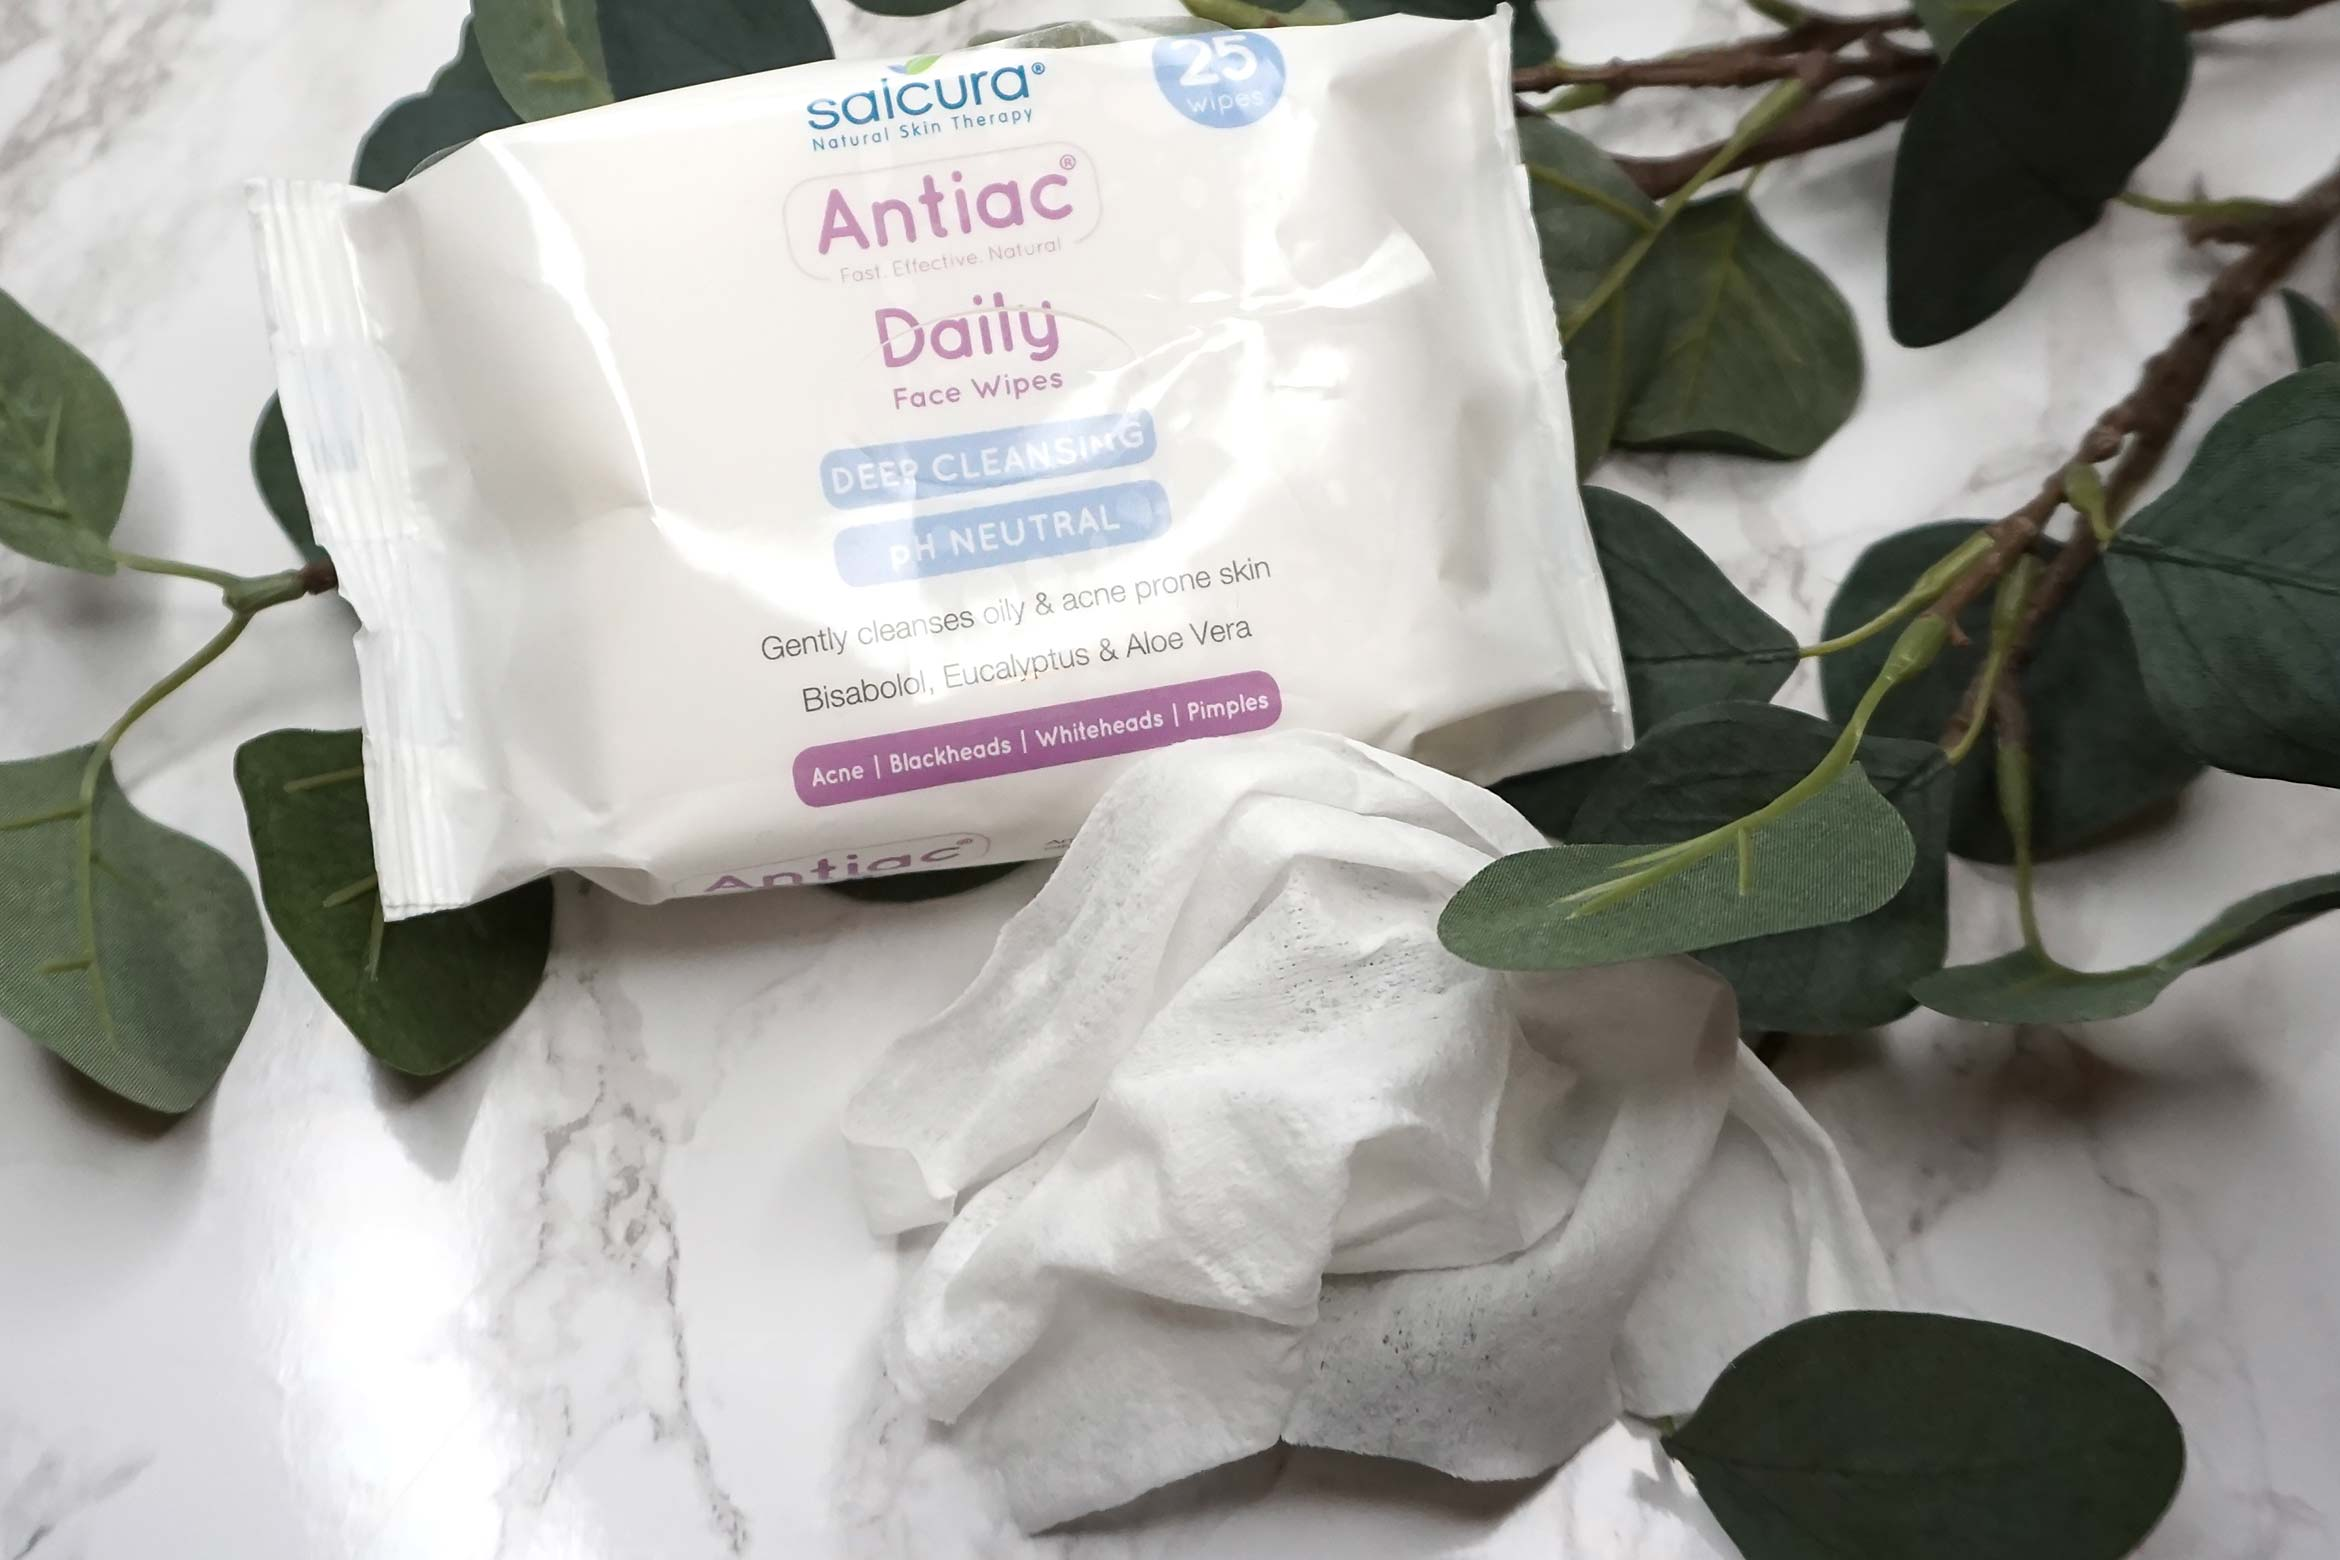 salcura-antiac-daily-face-wipes-review-1